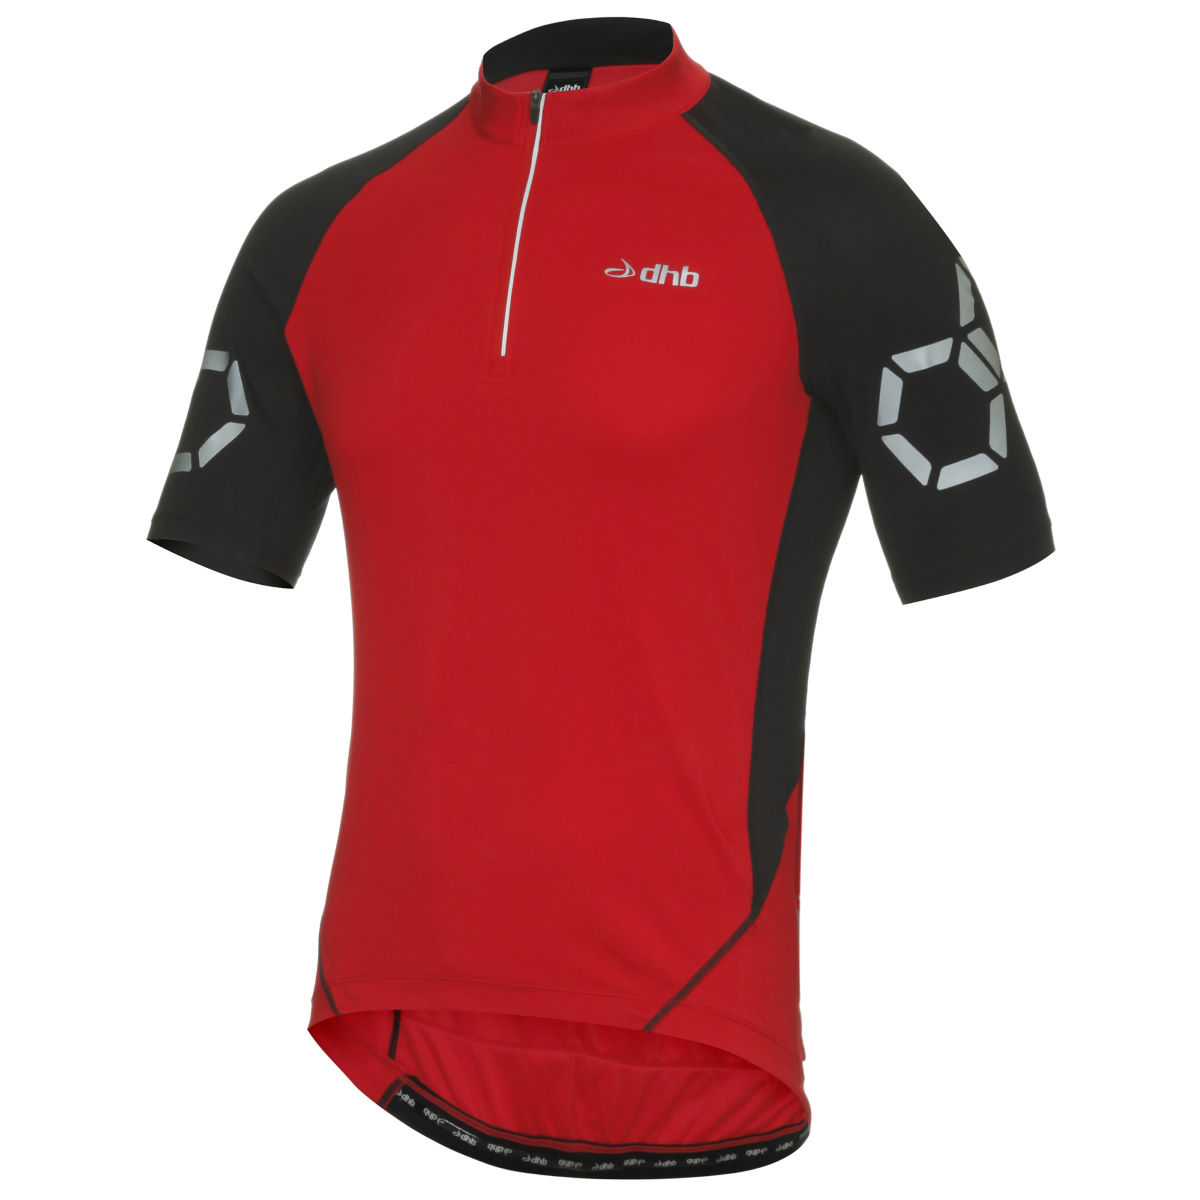 Maillot dhb Flashlight (manches courtes) - XS Rouge Maillots